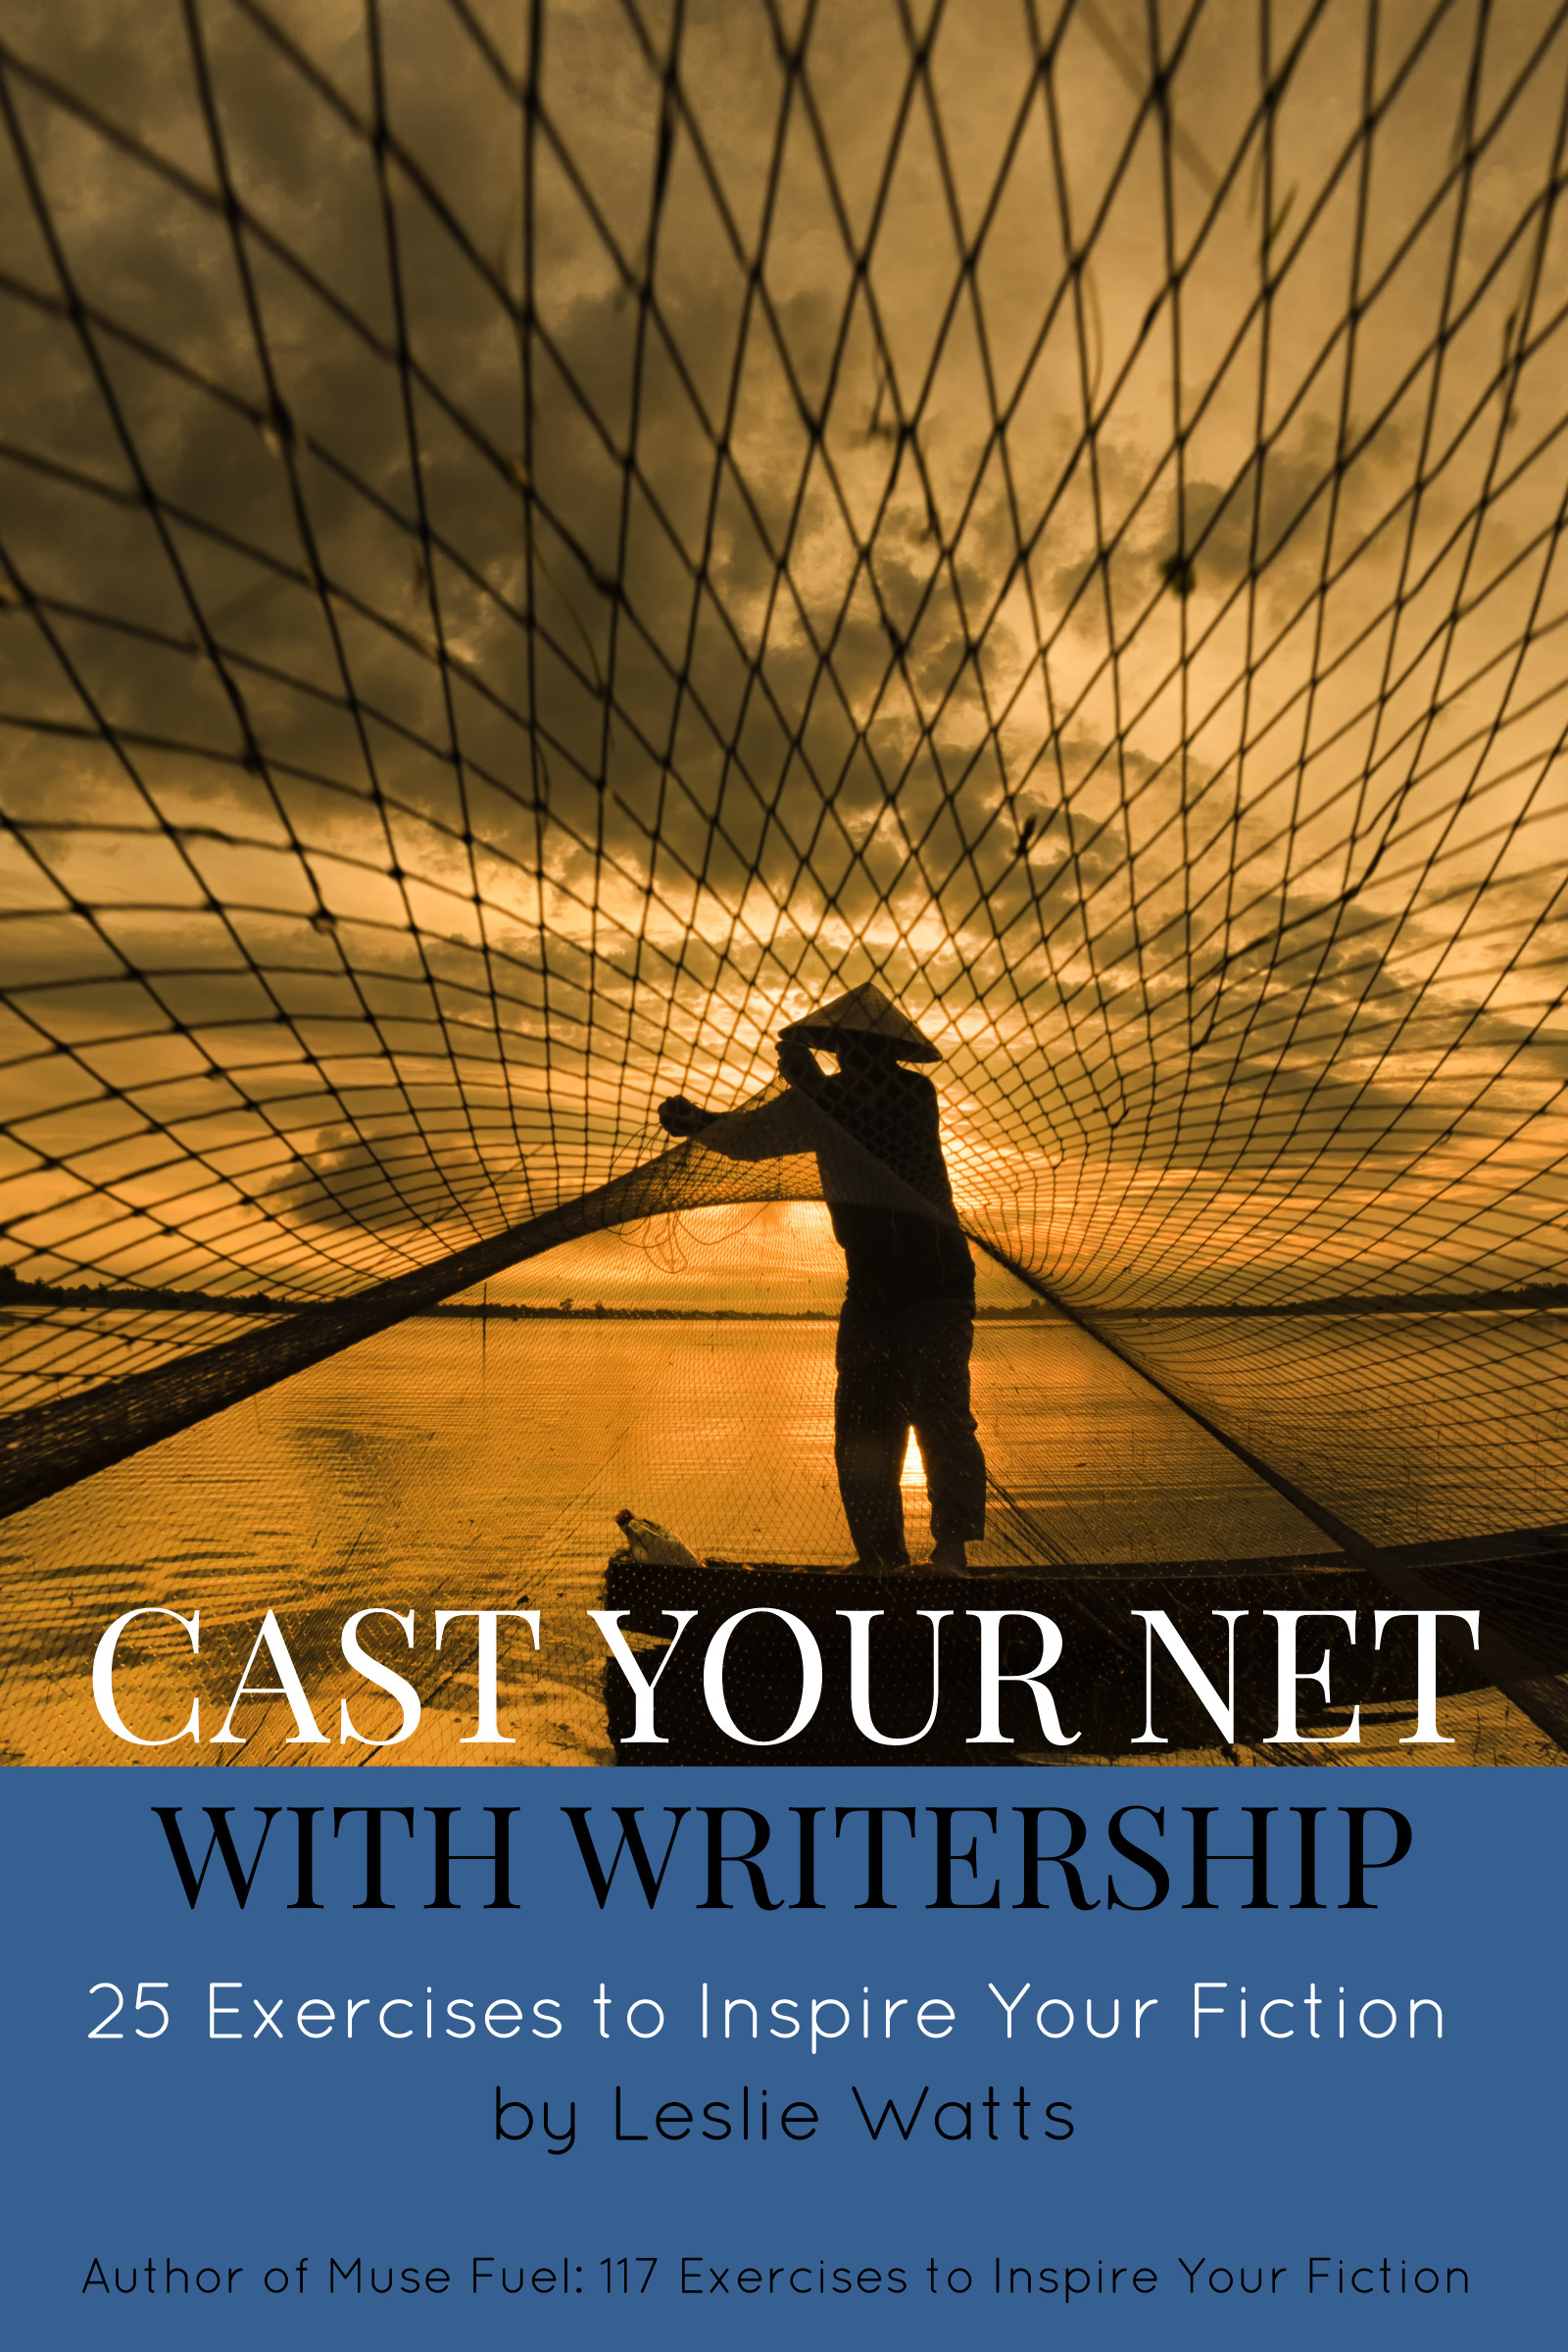 Cast Your Net with Writership: 25 Exercises to Inspire Your Fiction  by Leslie Watts.